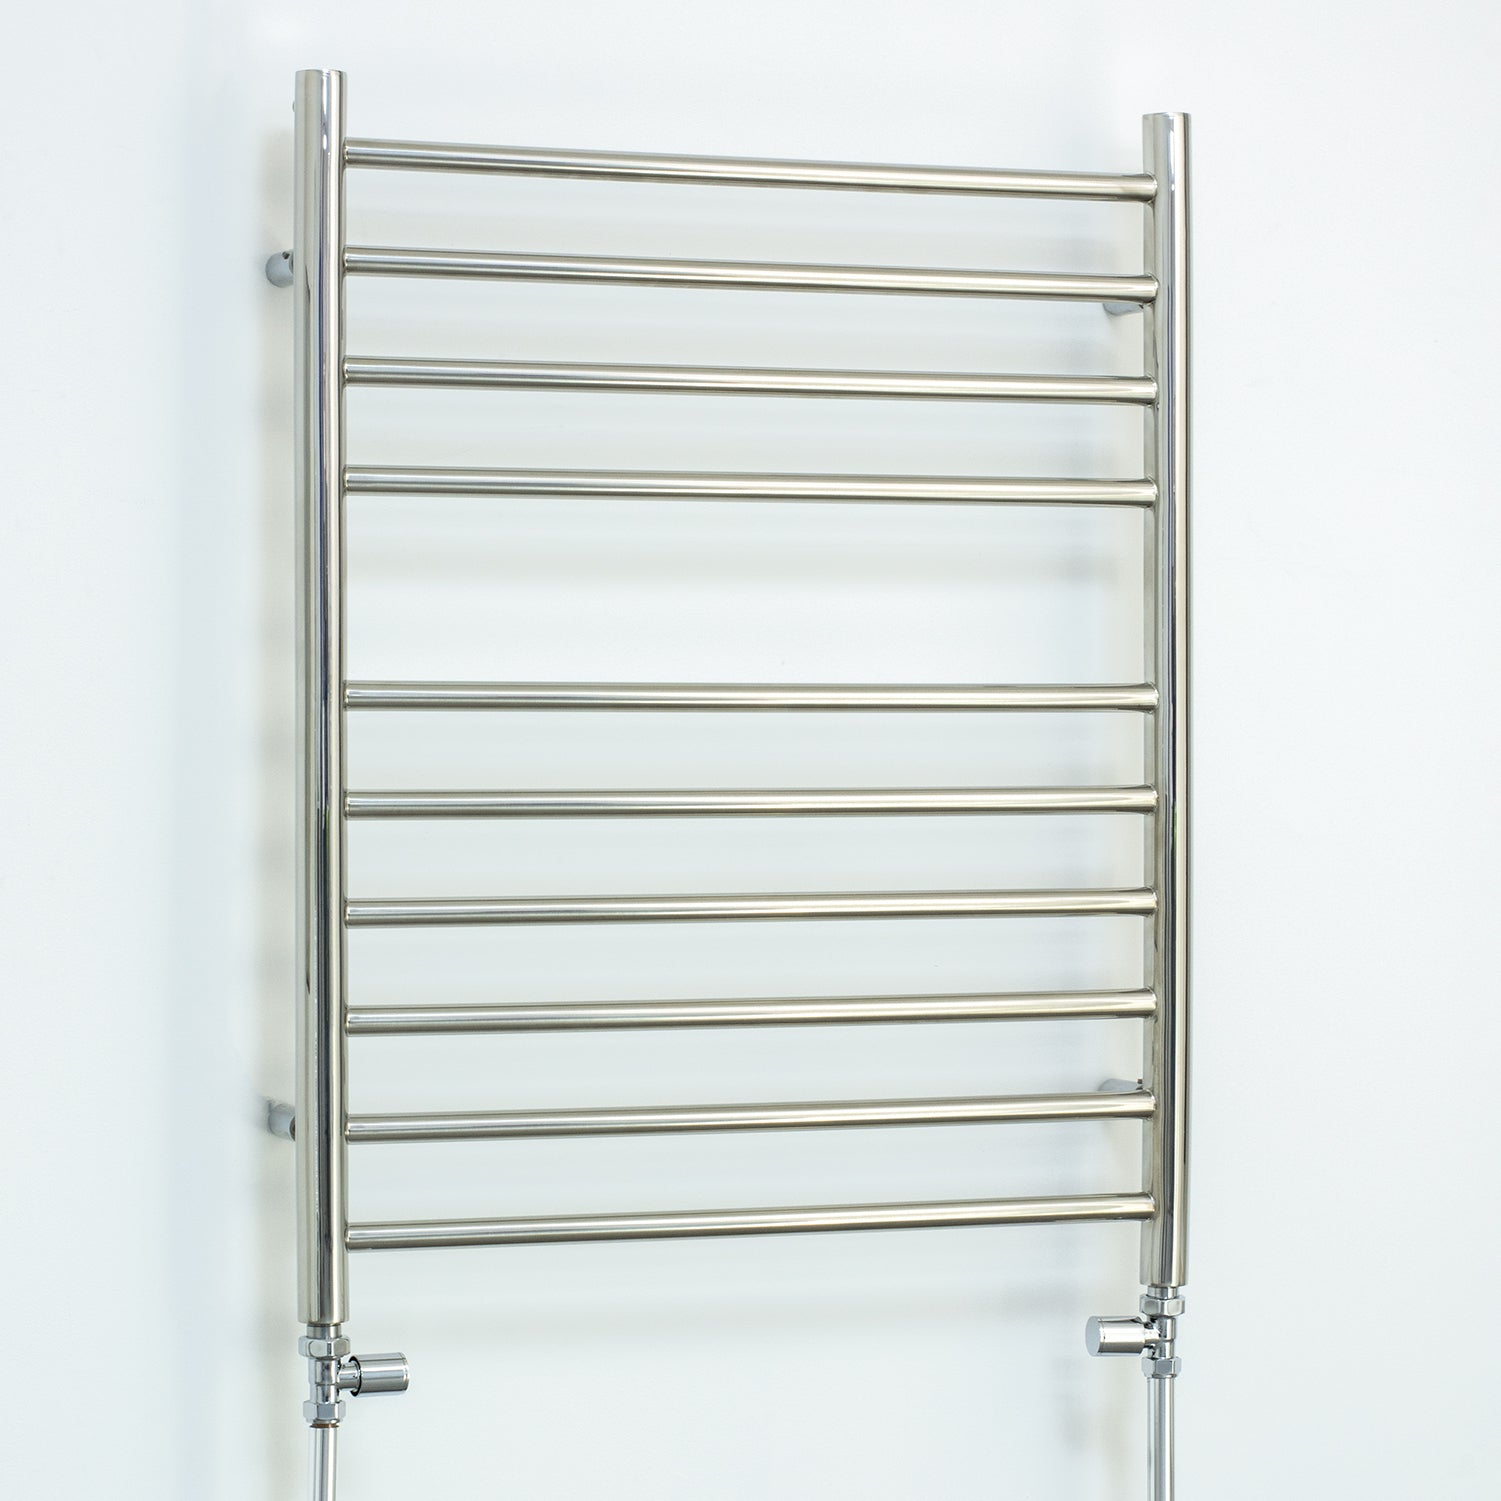 750 x 600 stainless steel towel rail radiator